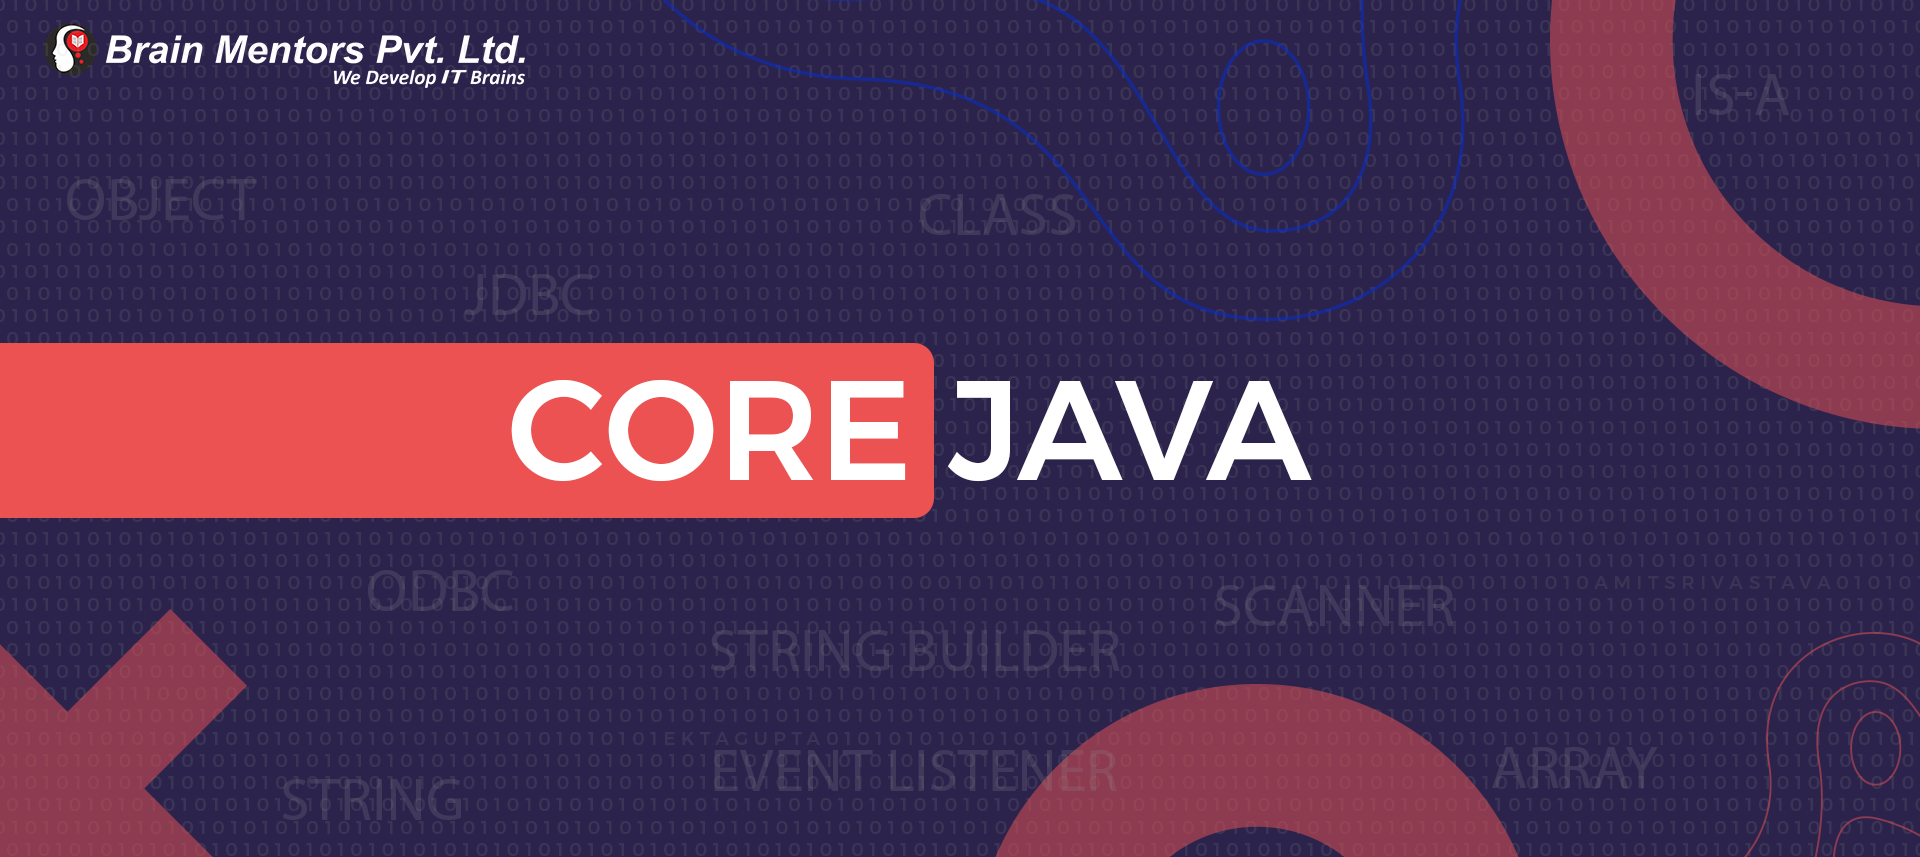 Core Java Programming Course